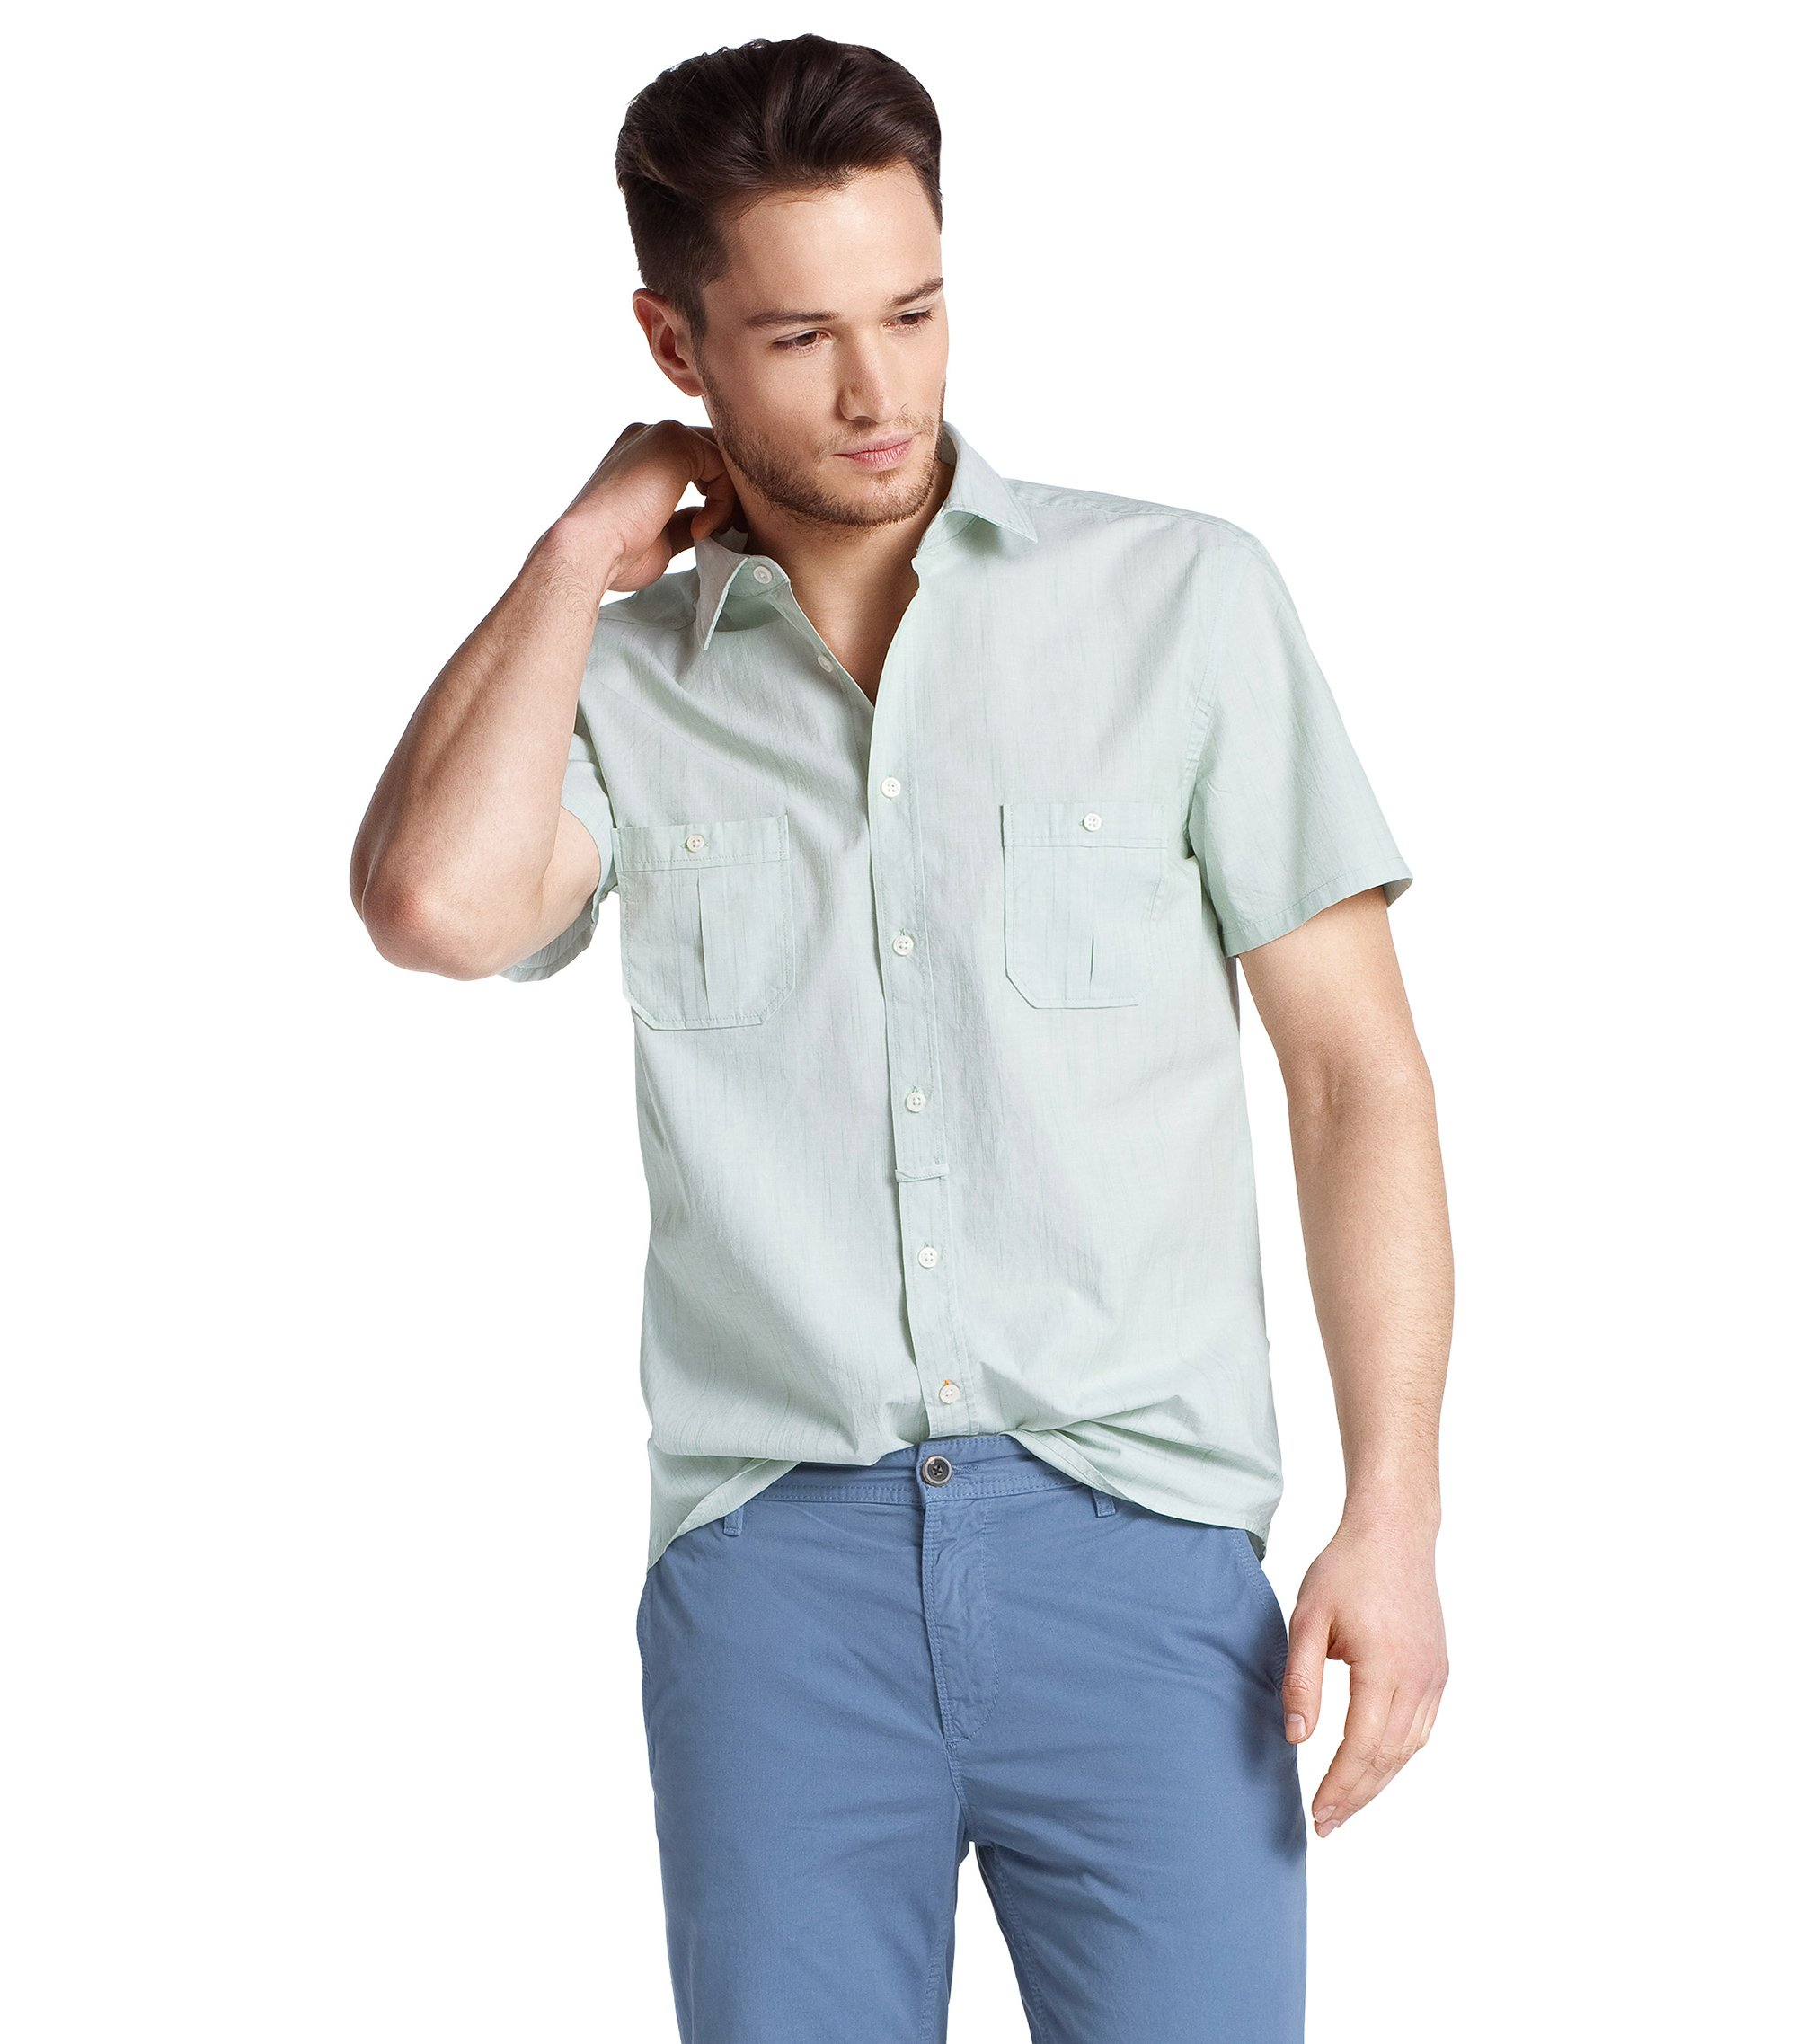 Leisure shirt with a Kent collar 'EgrifyE', Green